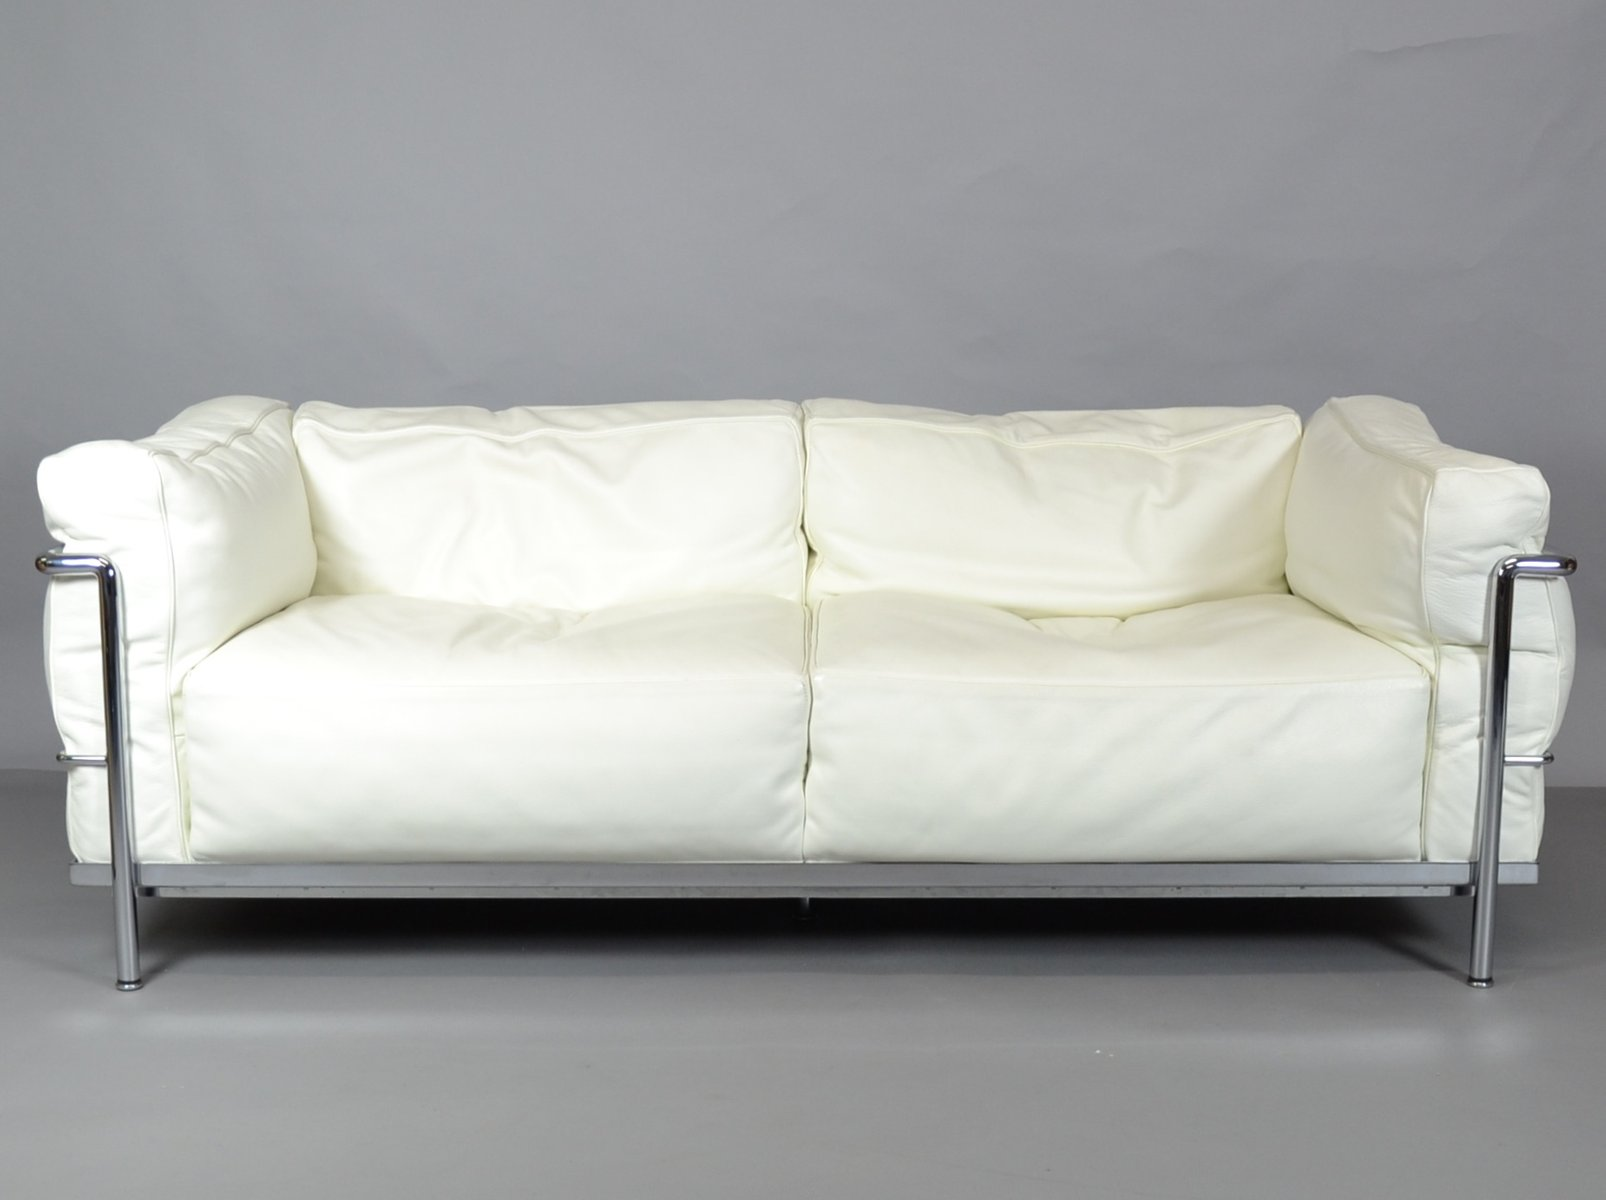 Charmant Vintage LC3 Sofa By Le Corbusier, Charlotte Perriand, And Pierre Jeanneret  For Cassina